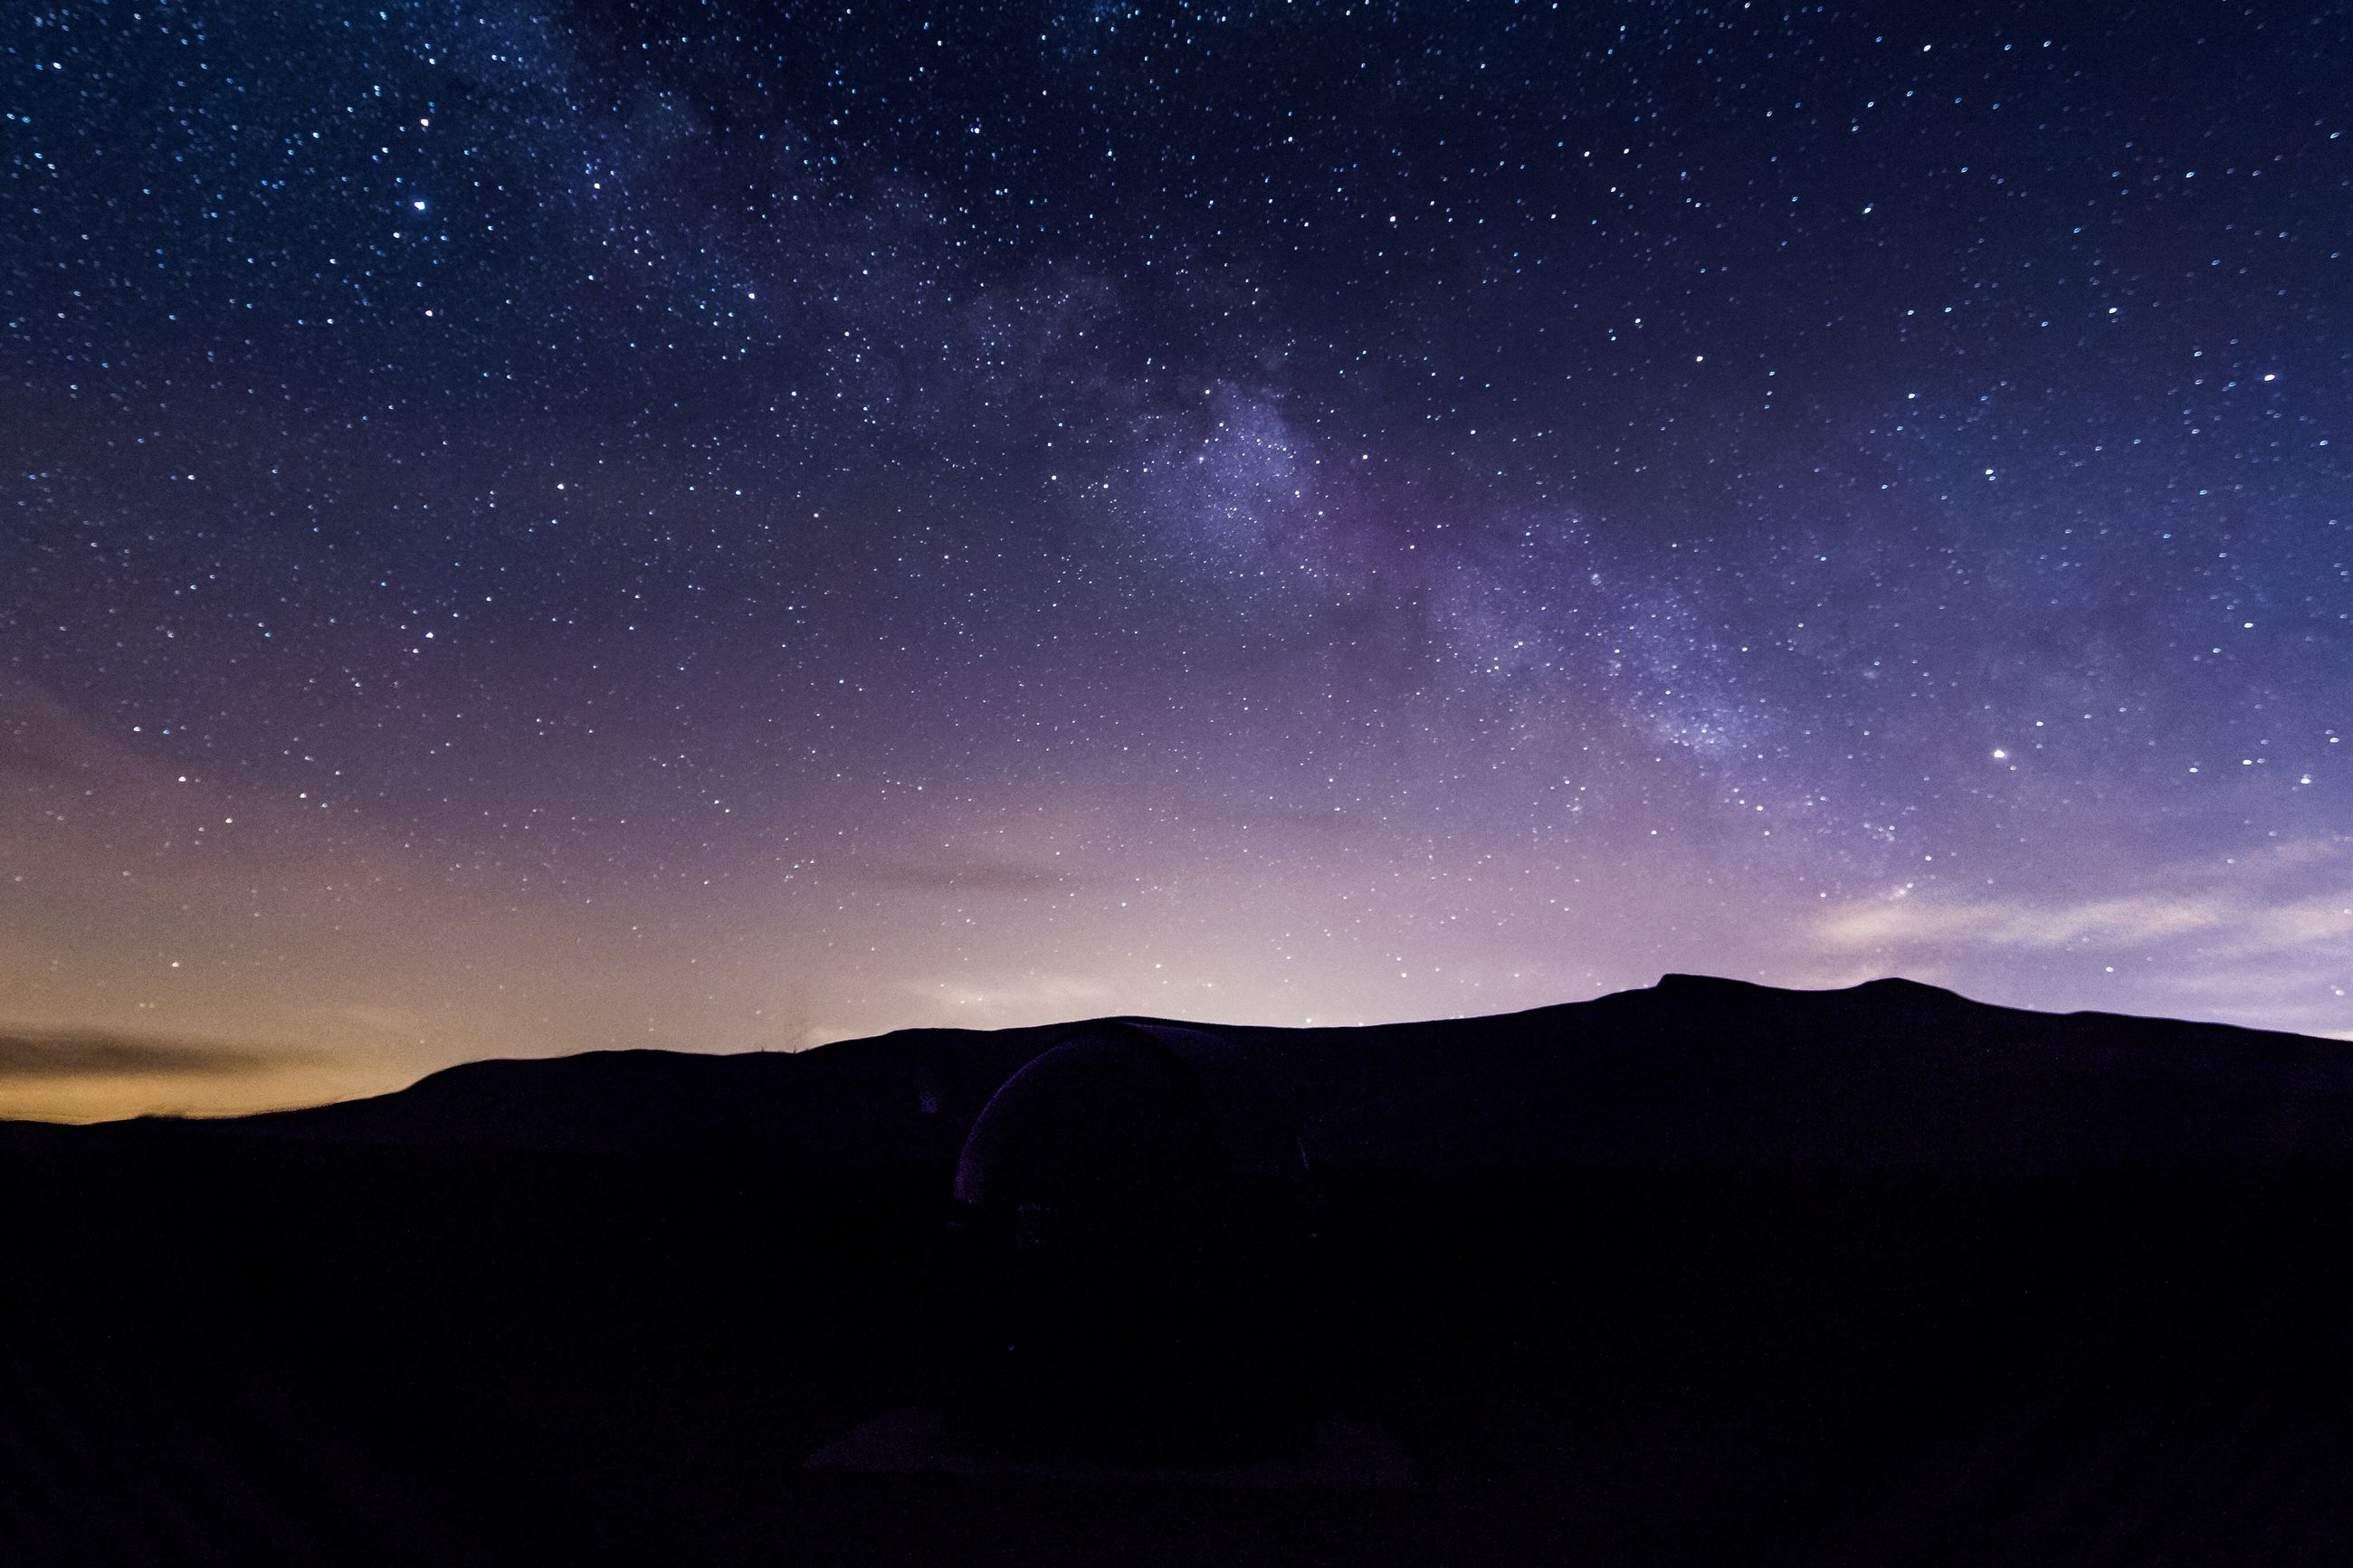 star - space, astronomy, sky, space and astronomy, night, space, beauty in nature, nature, mountain, outdoors, milky way, no people, scenics, galaxy, star field, constellation